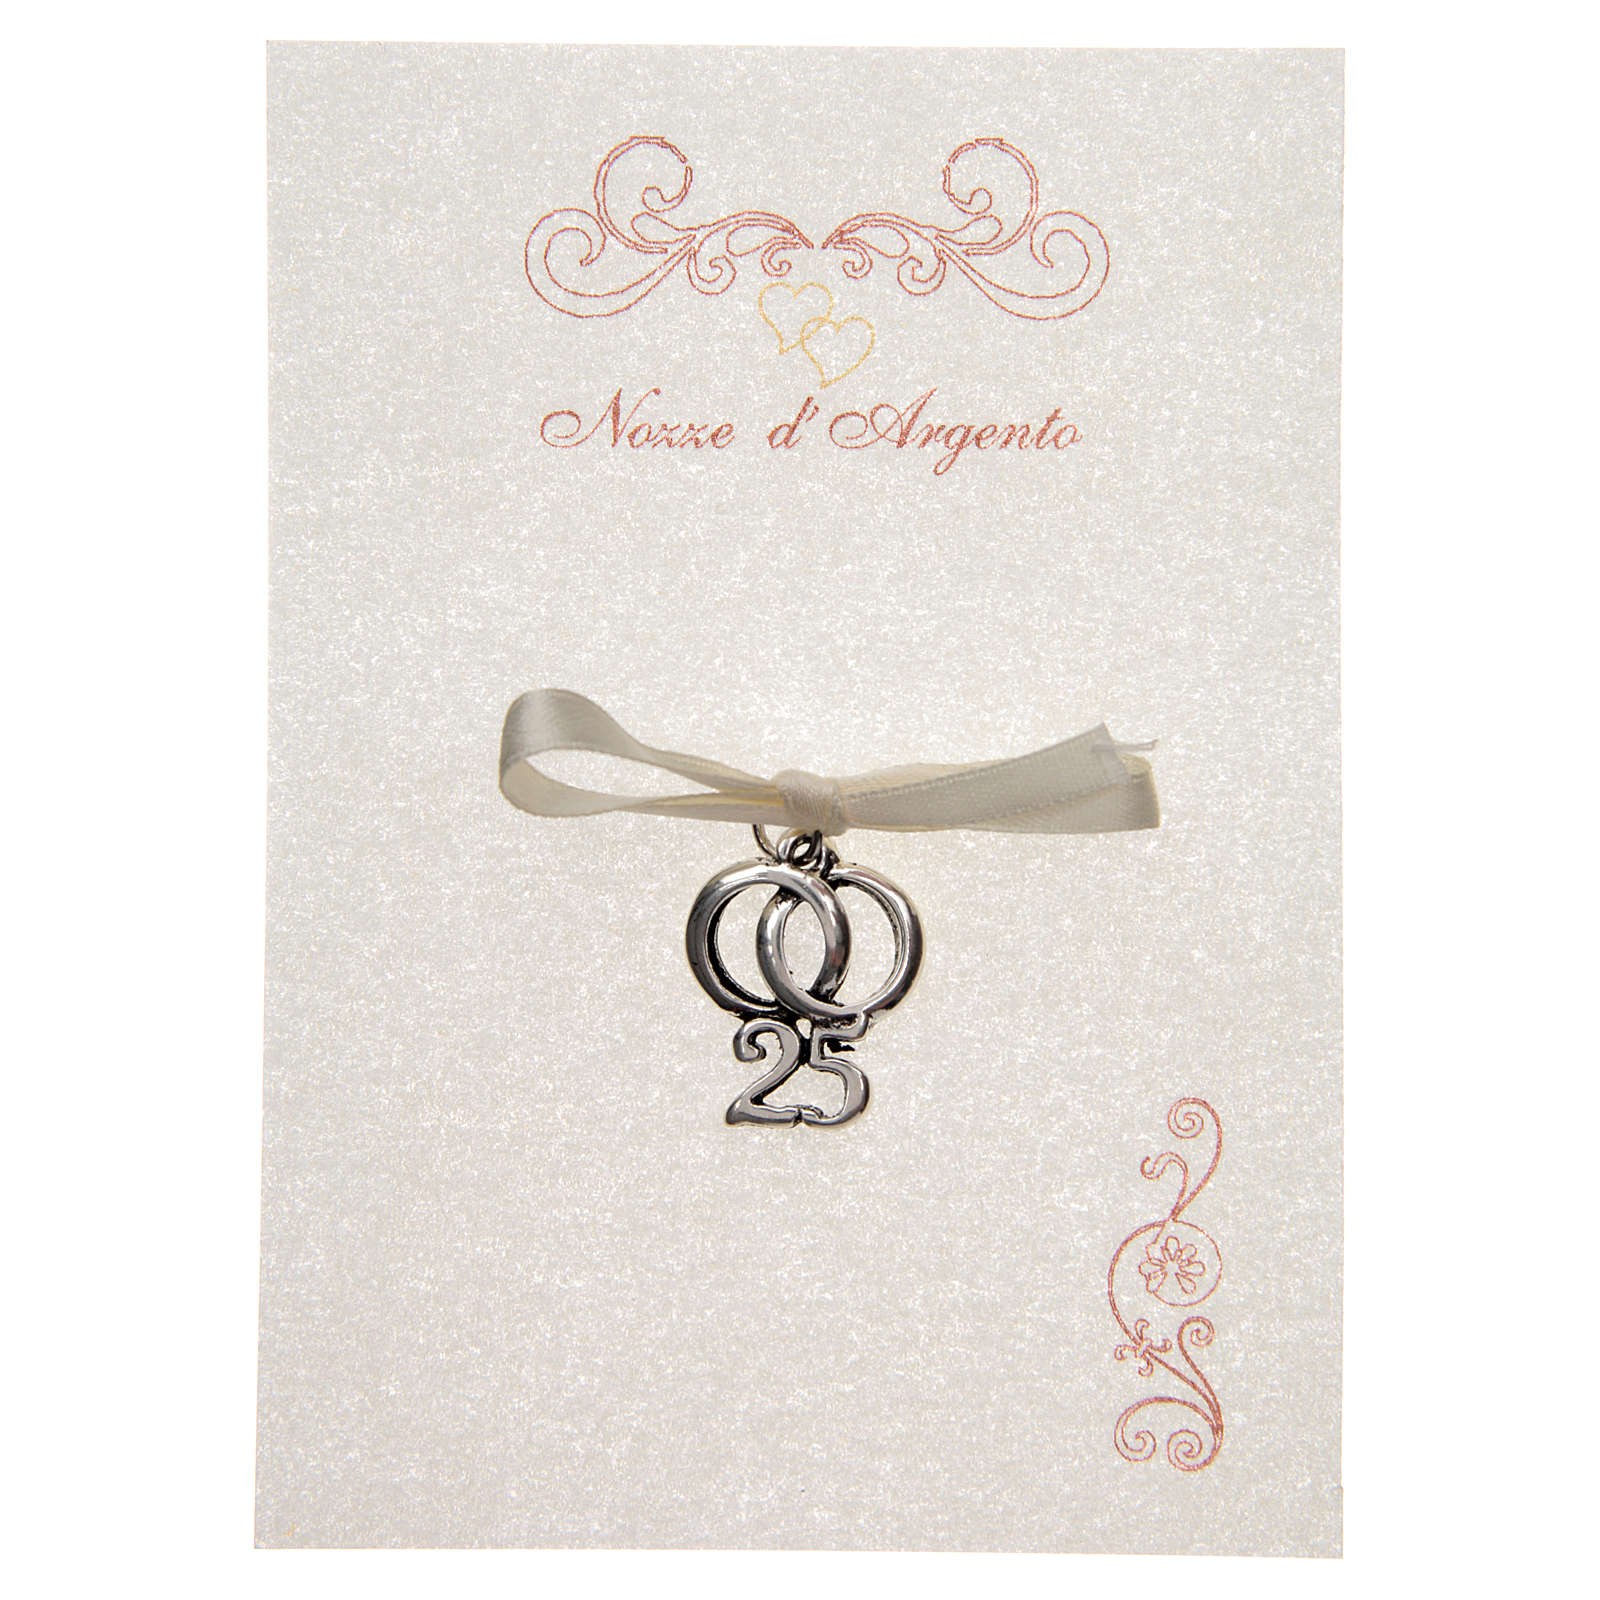 Wedding anniversary memory 25 with wedding rings and parchment 3